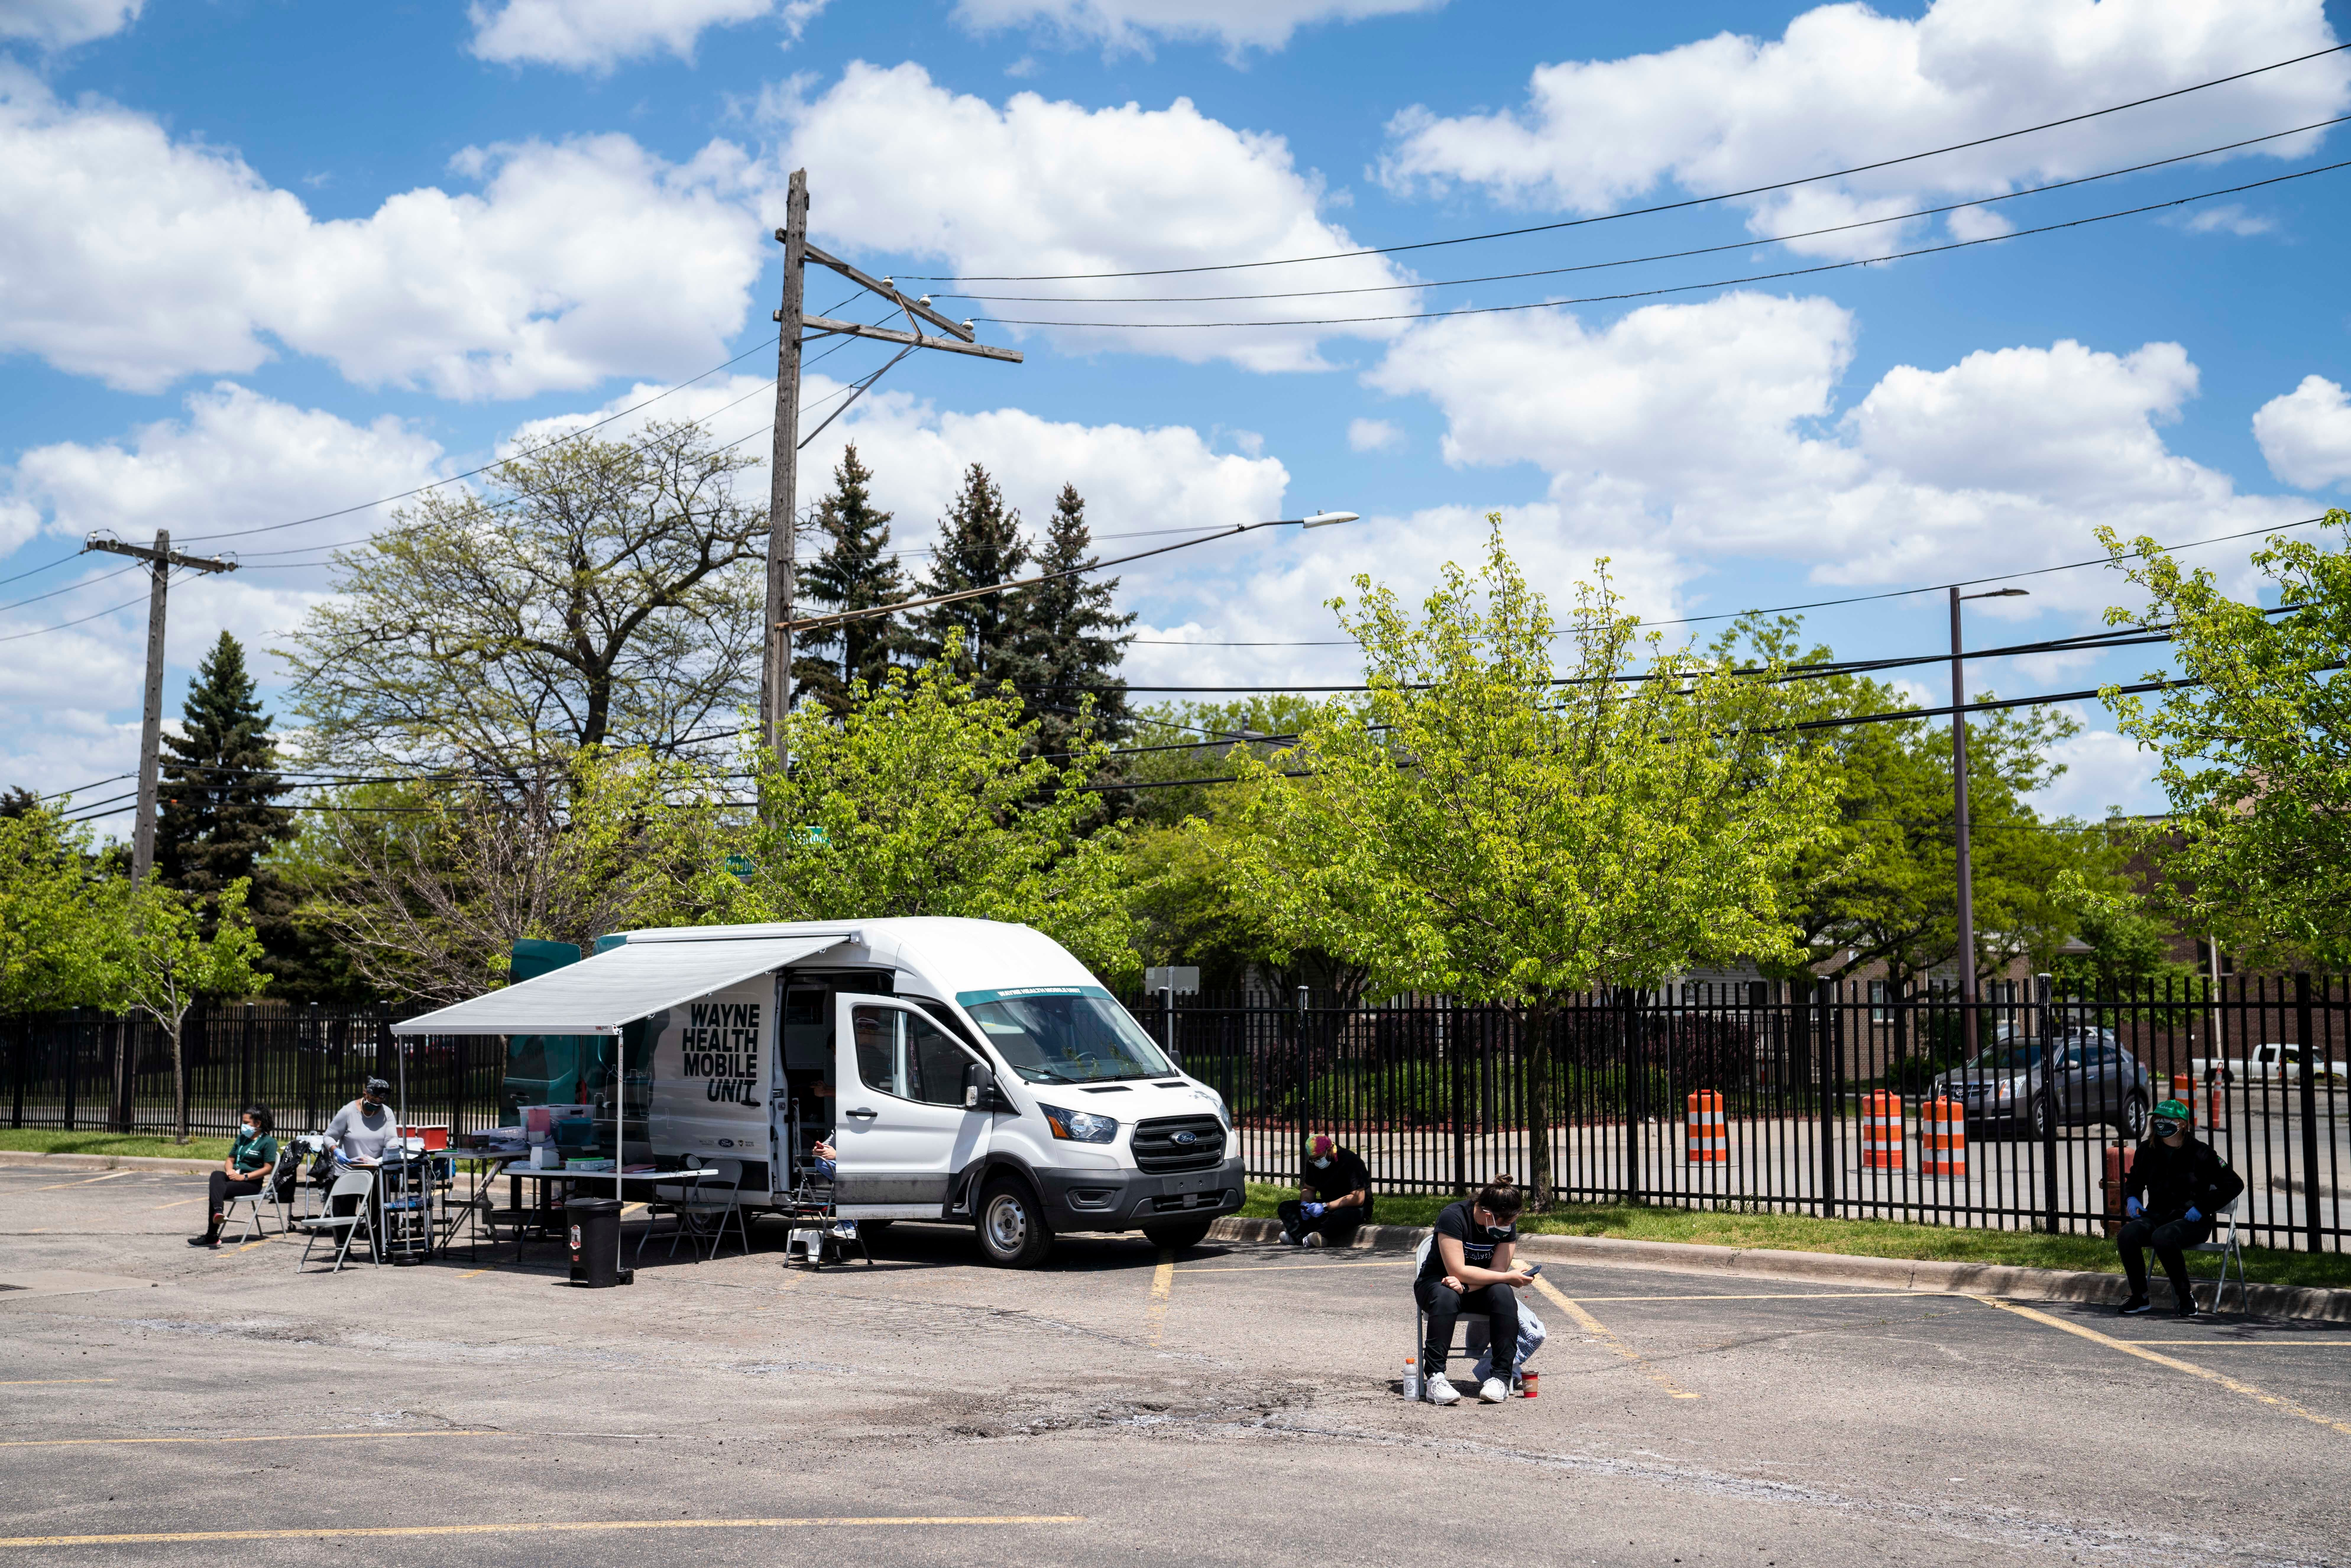 Staff wait for patients who want a COVID-19 vaccine at one of the Wayne Health Mobile Units in Detroit, May 14, 2021. On this